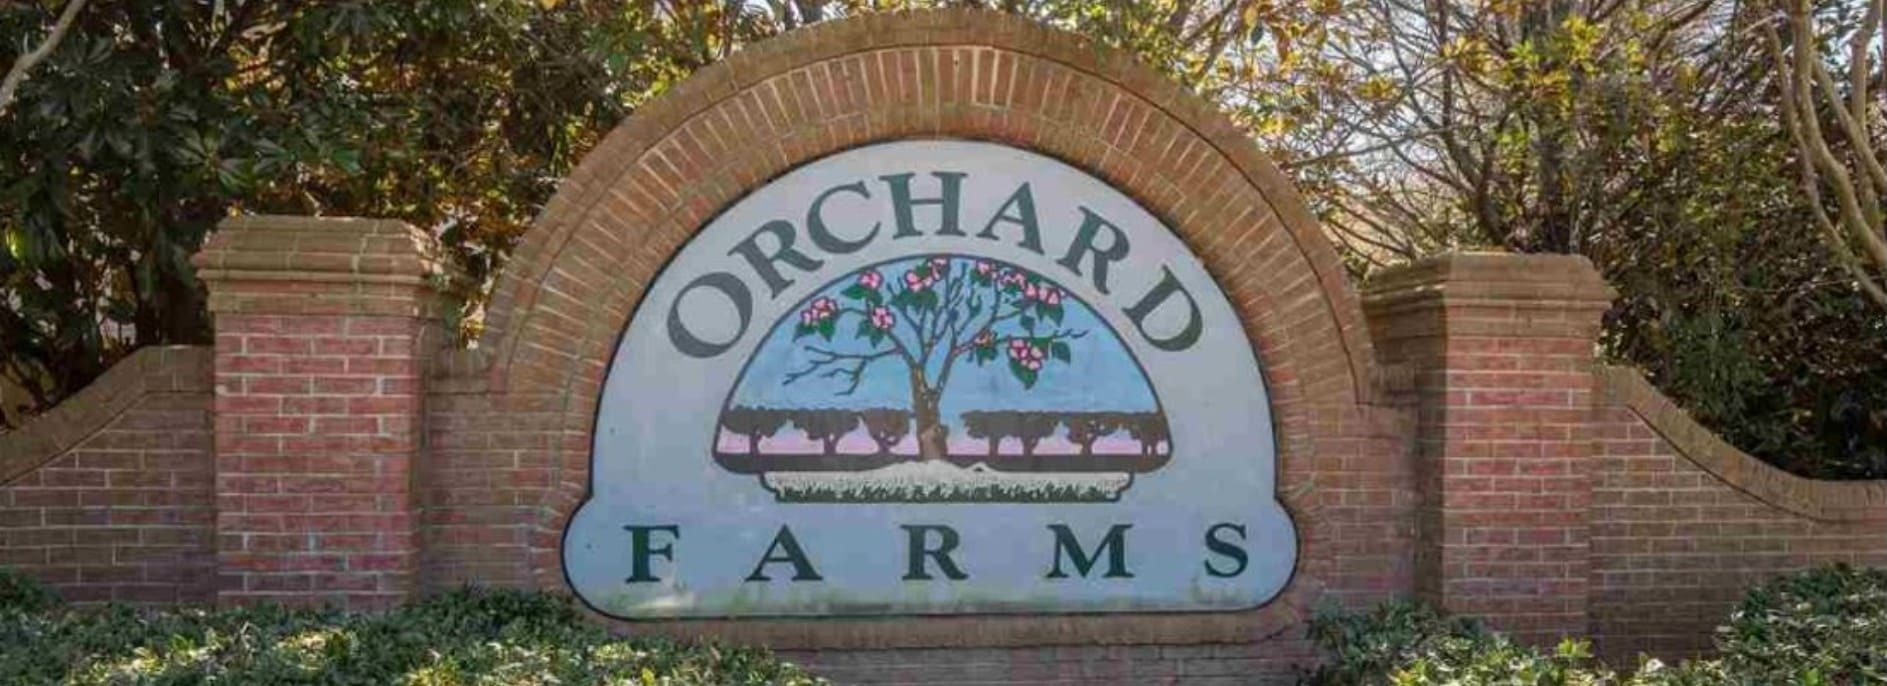 Orchard Farms, Greenville County, SC - Area Info | Berkshire